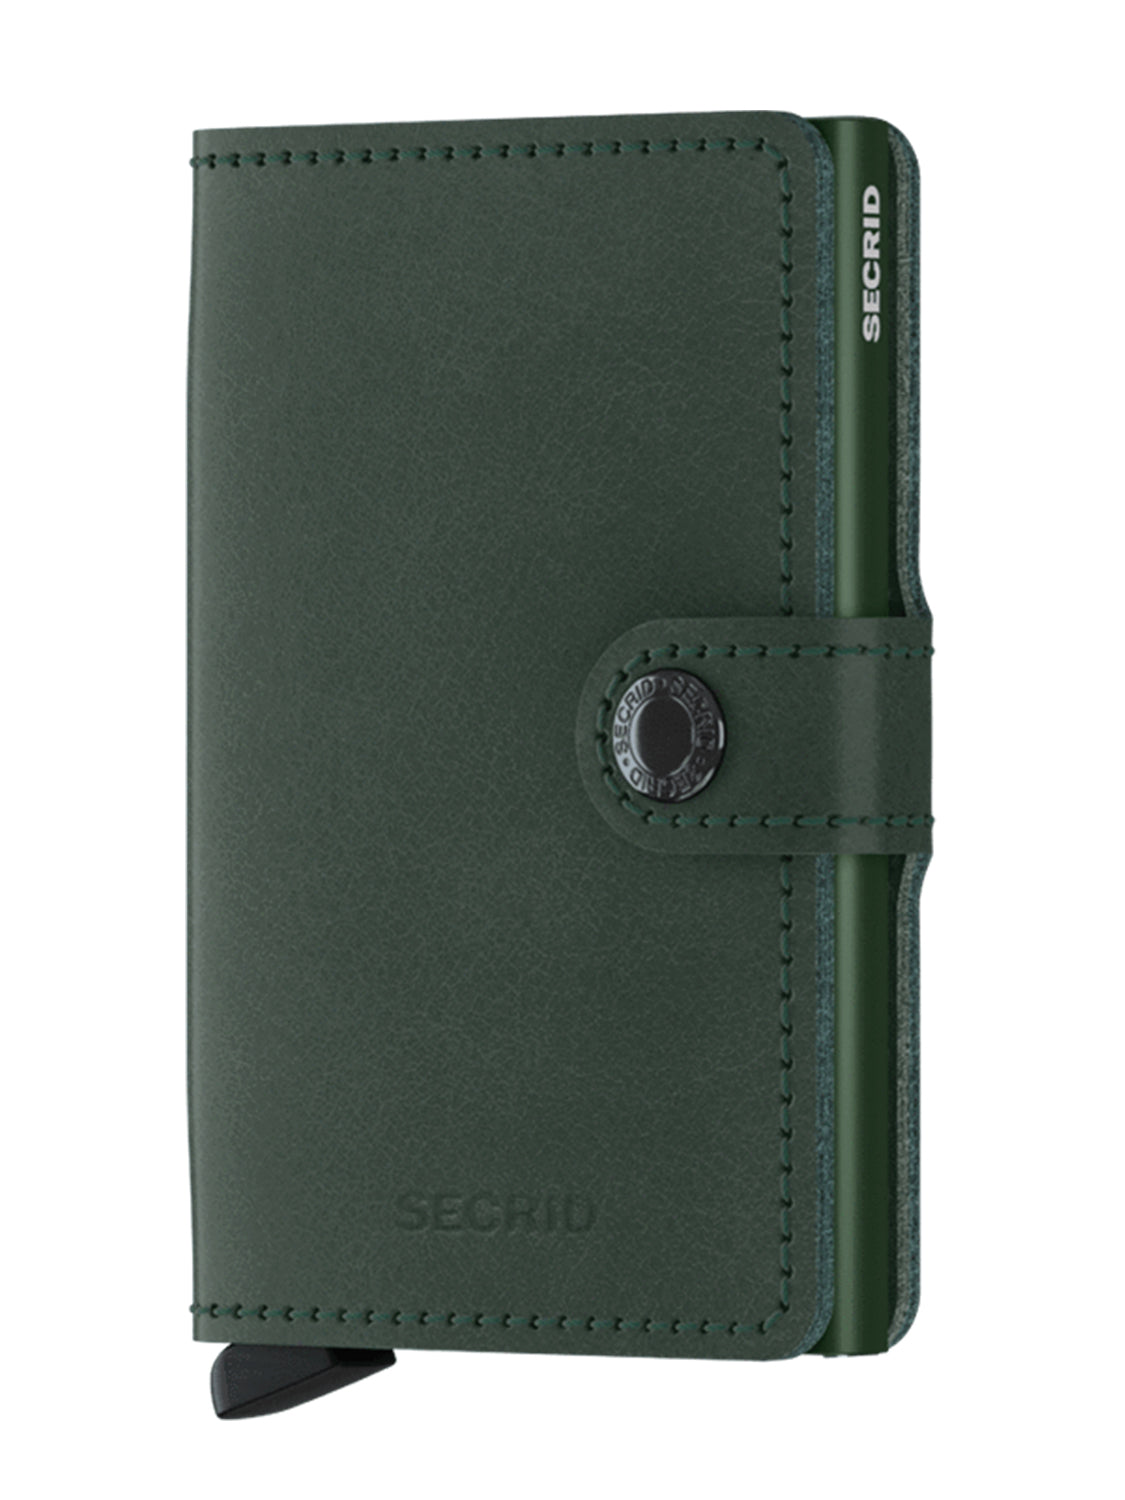 Miniwallet Original (Green) - Union 22